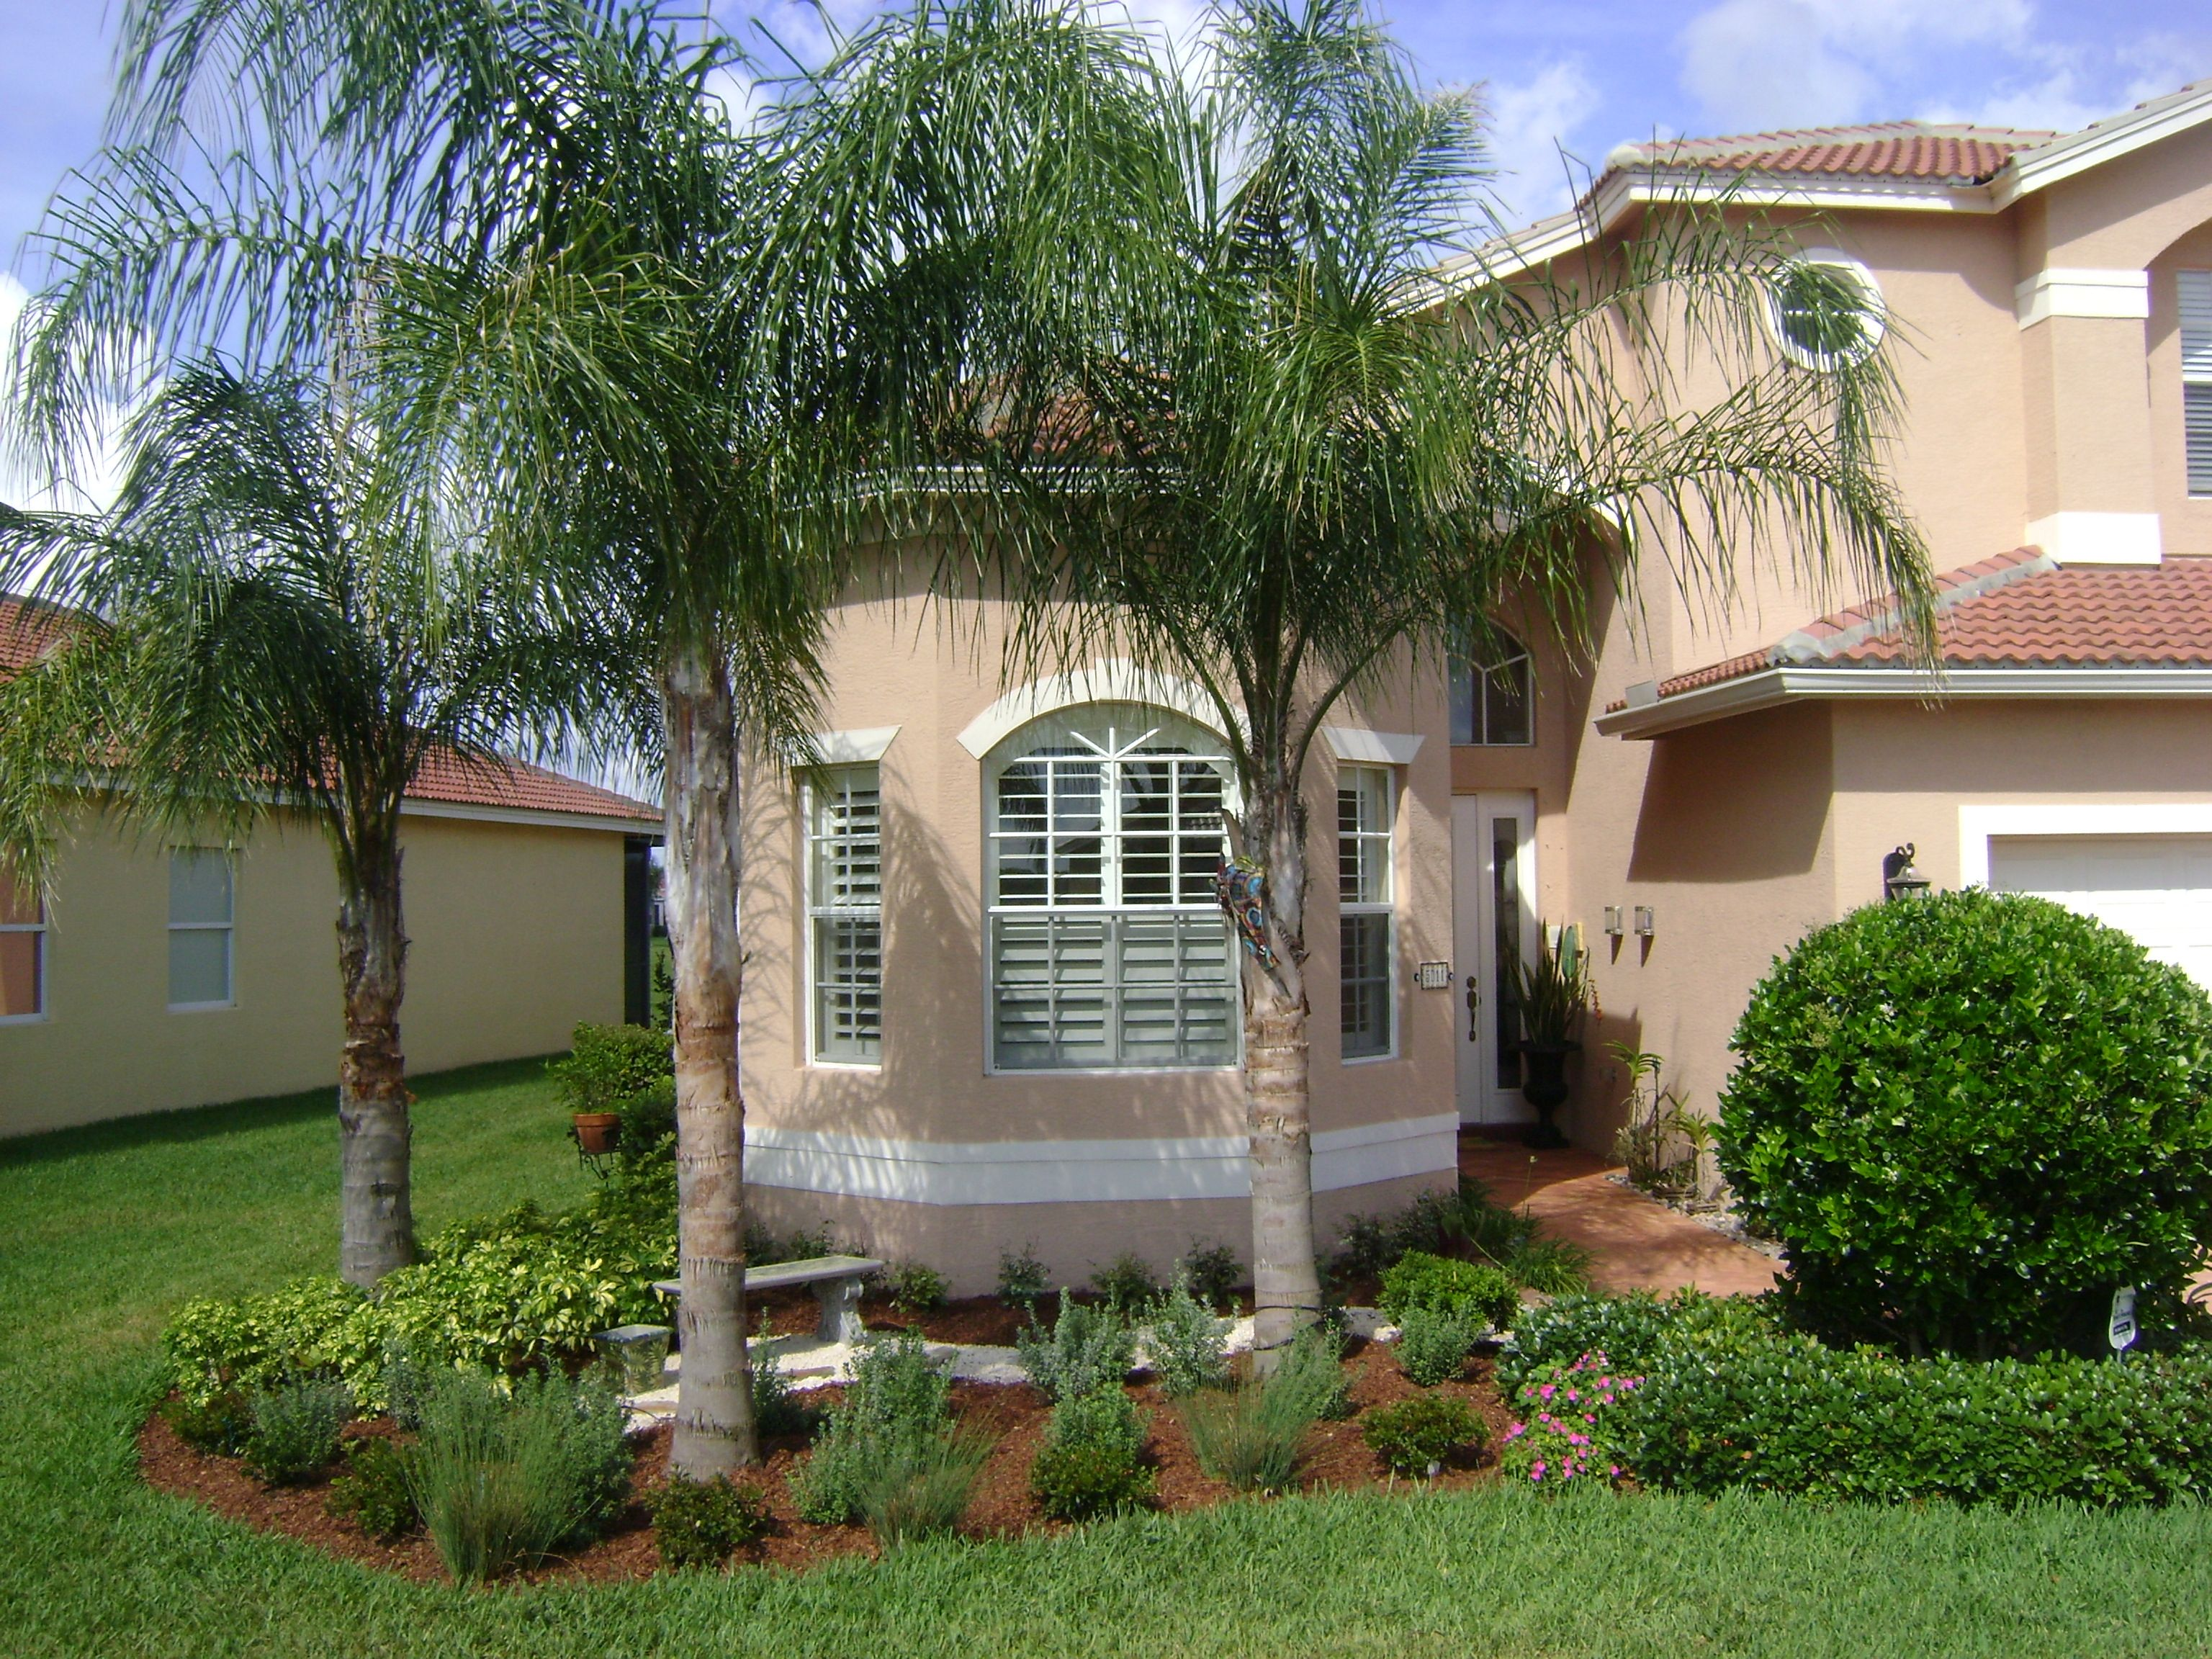 http://www.plantnurserytampa.com/wp-content/uploads/2010 ... on Backyard Landscaping Ideas With Palm Trees id=20209